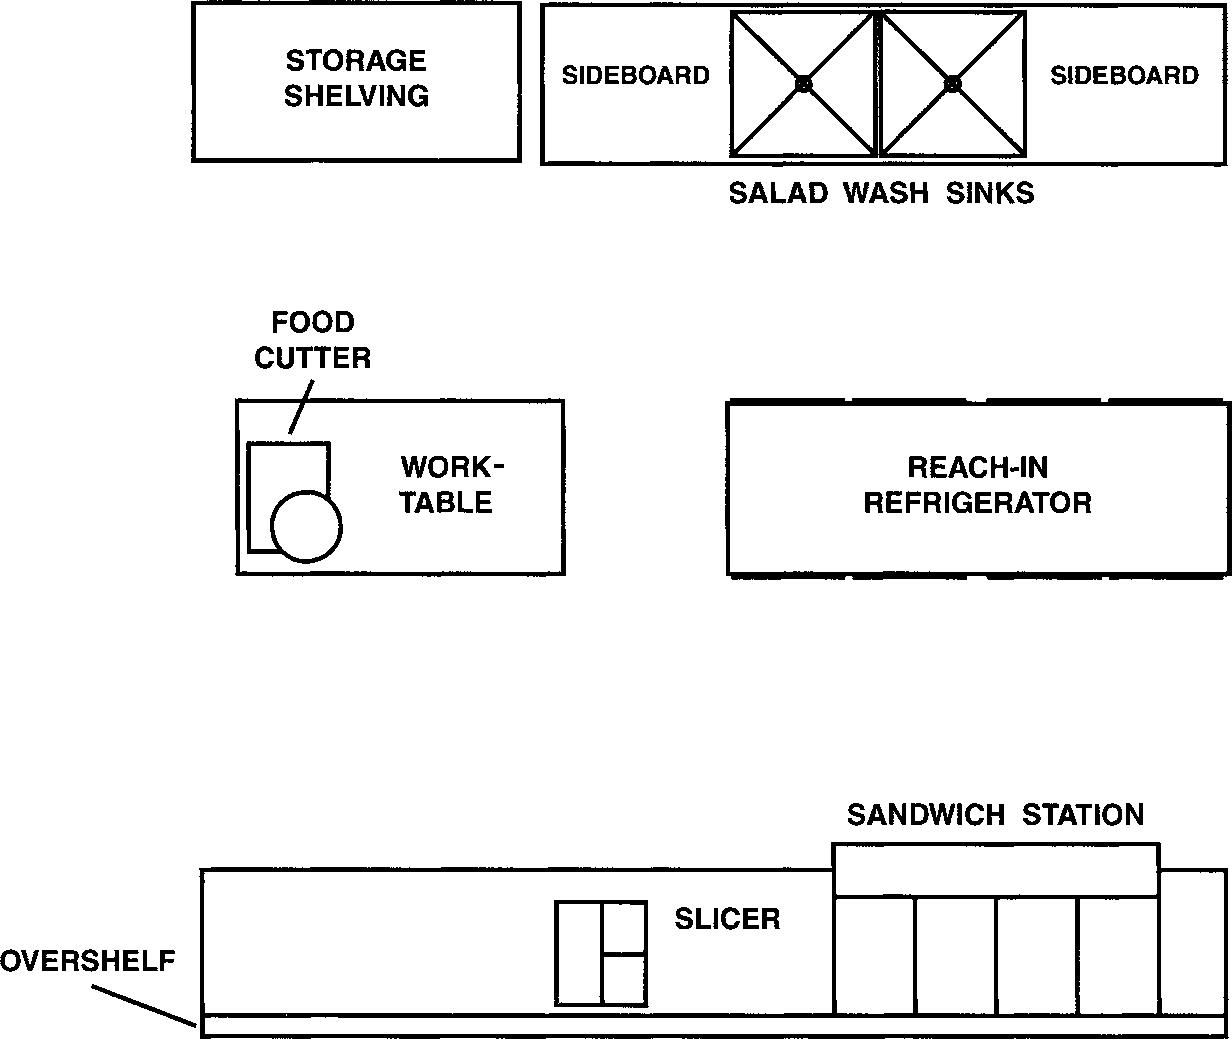 Restaurant Kitchen Operations planning and operation various food and beverage outlet